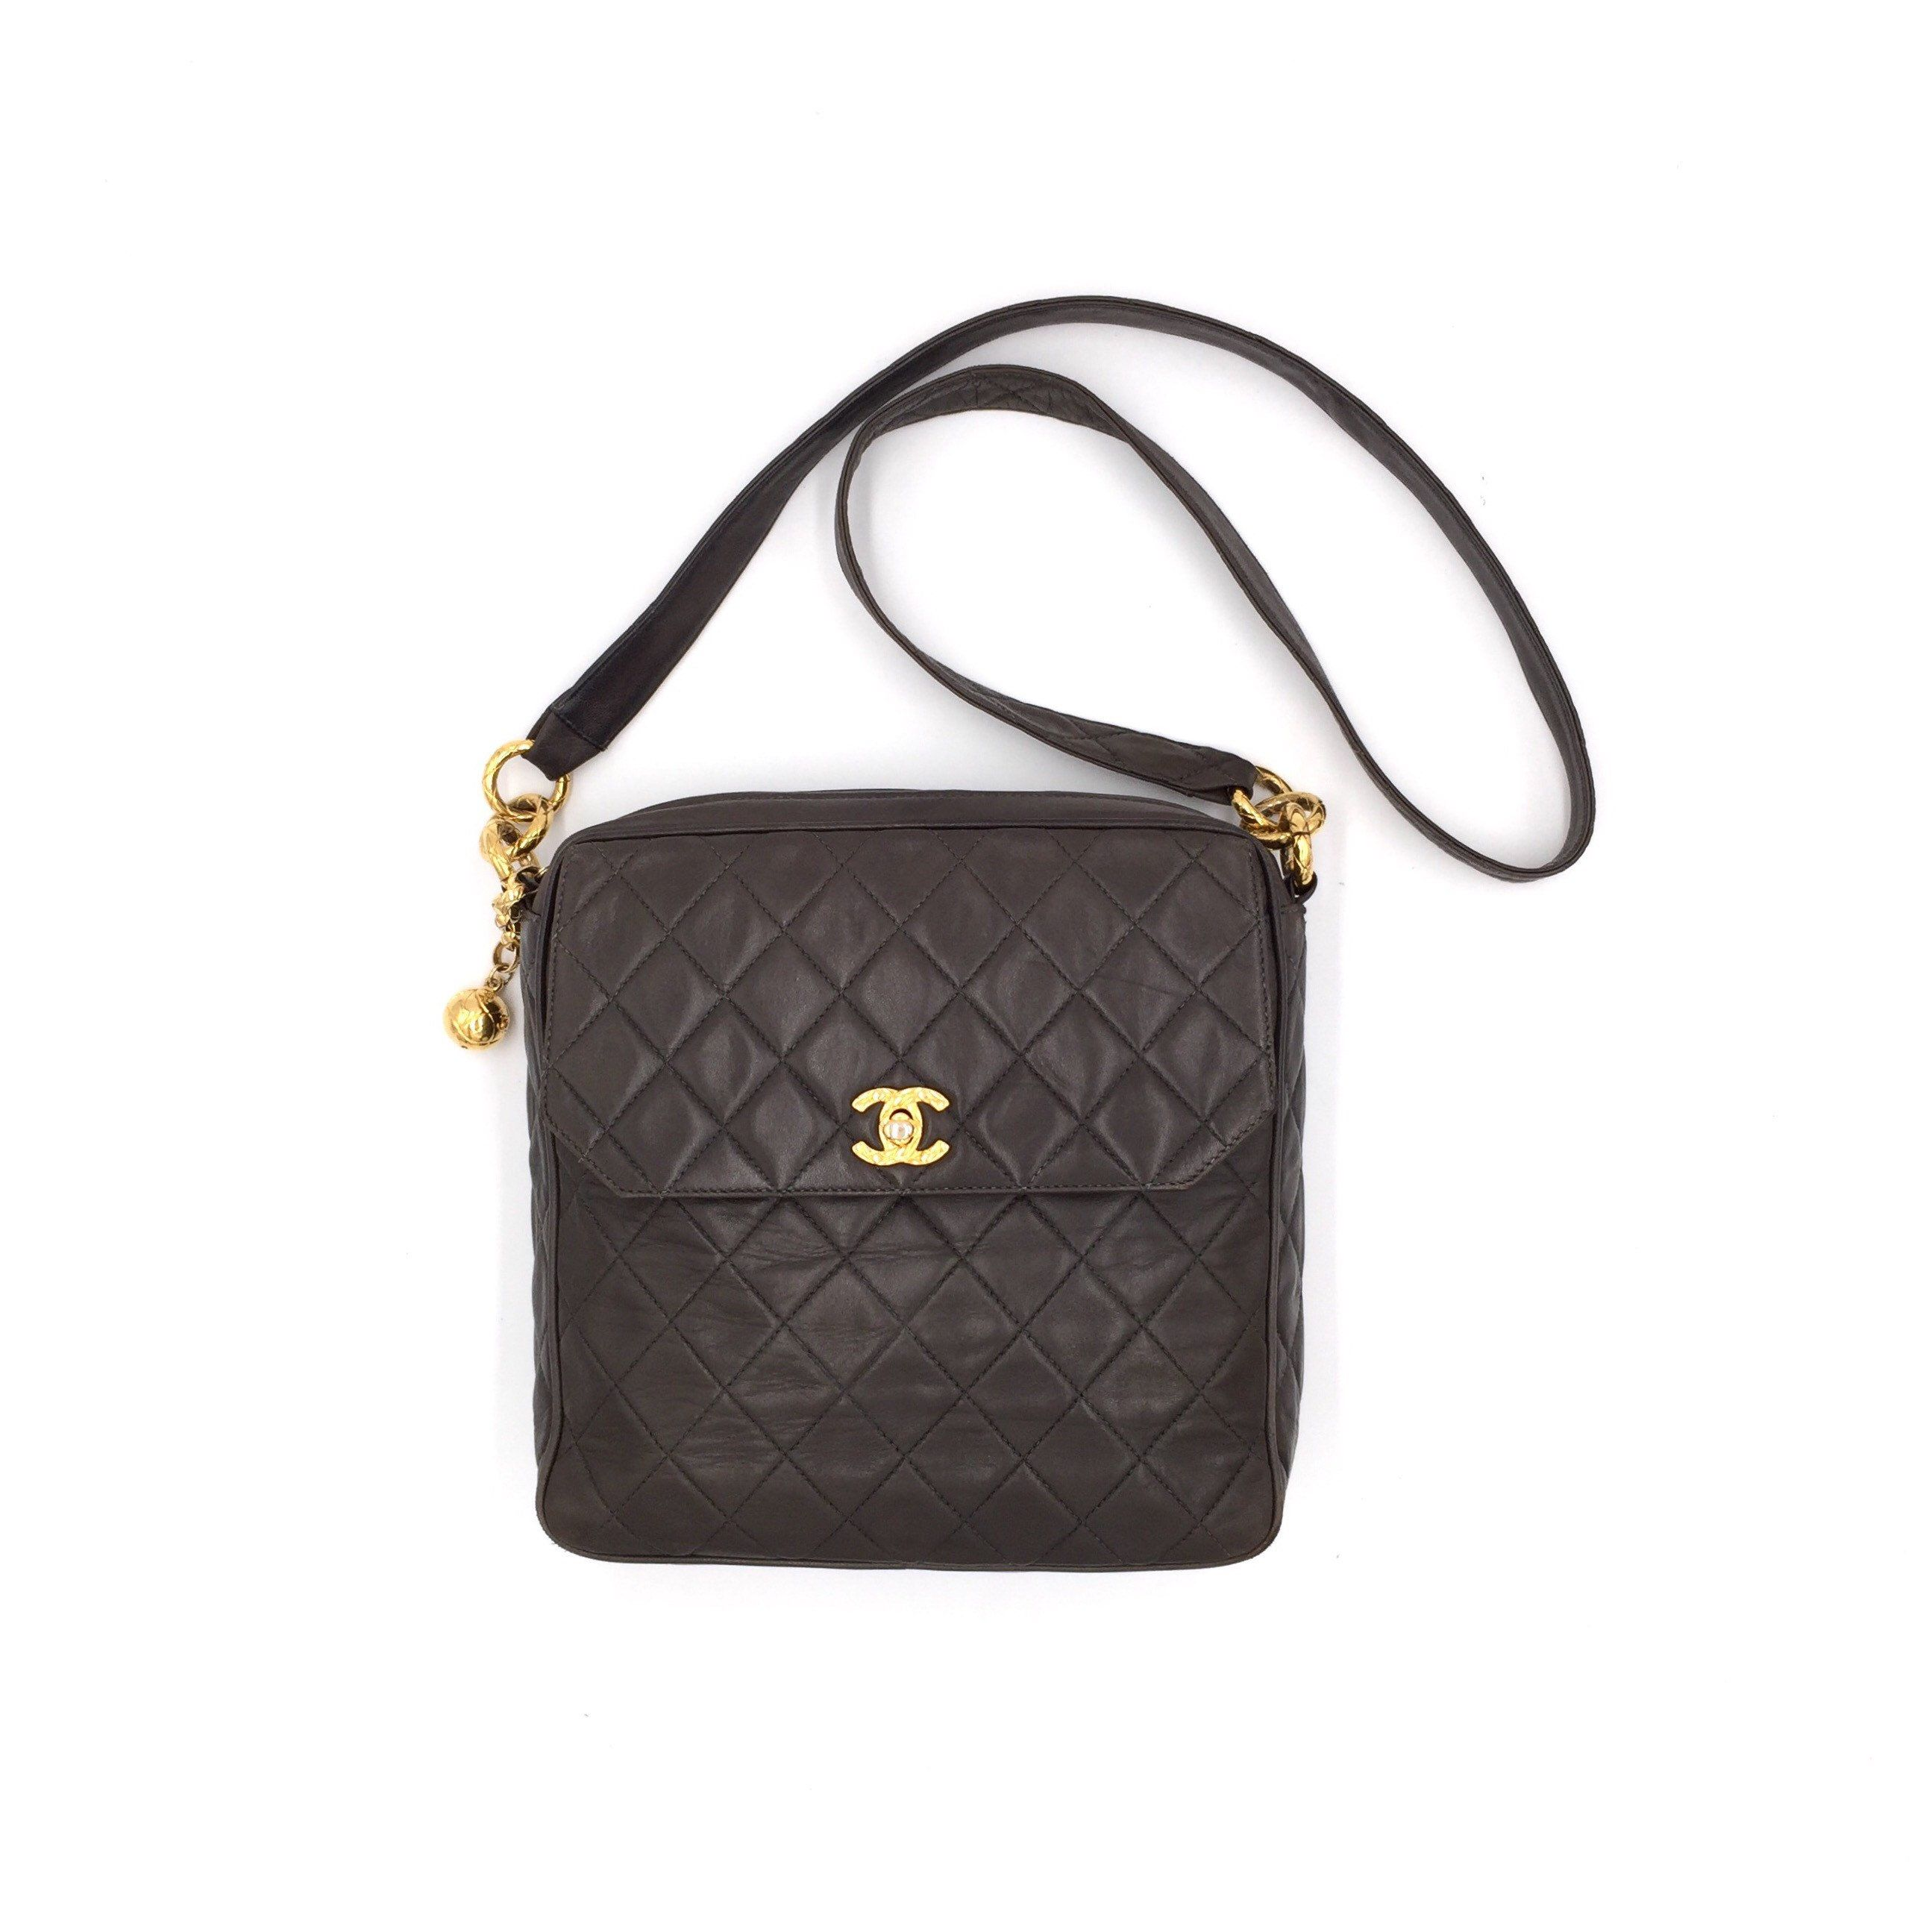 Authentic Chanel Vintage Quilted Lambskin Messenger Bag With Leather Strap